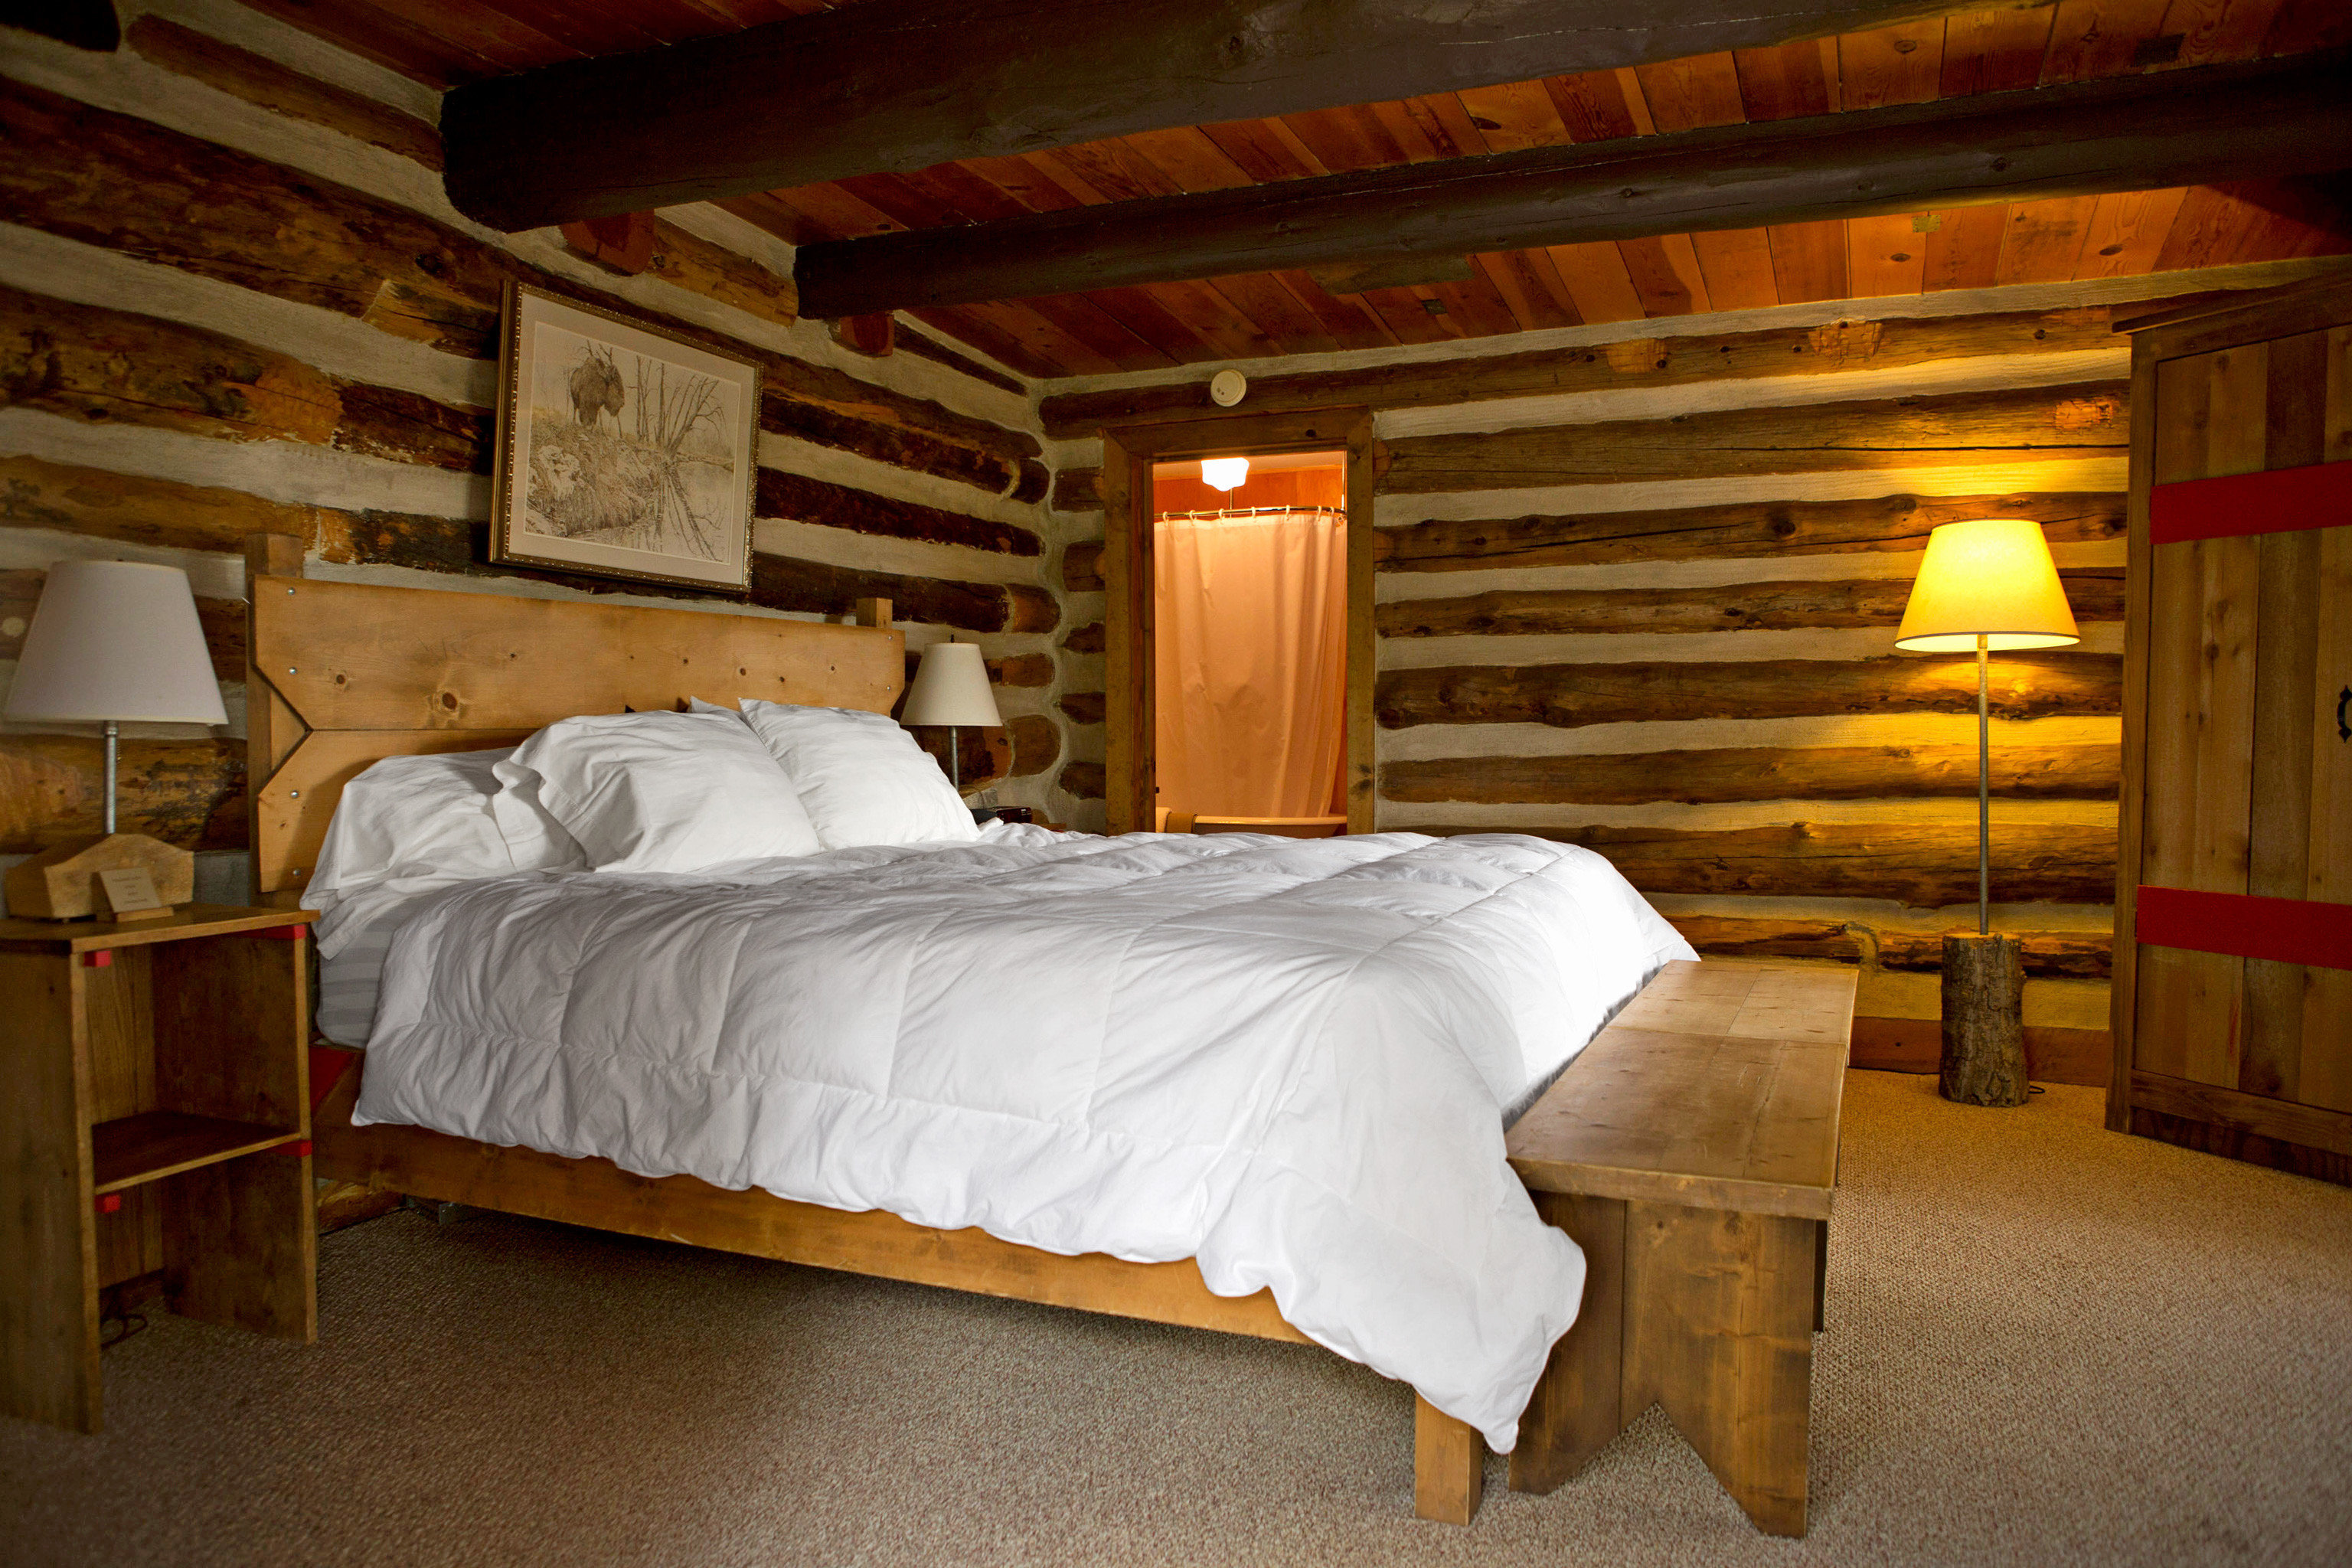 Bedroom Country Mountains Ranch Rustic property building house log cabin cottage farmhouse night